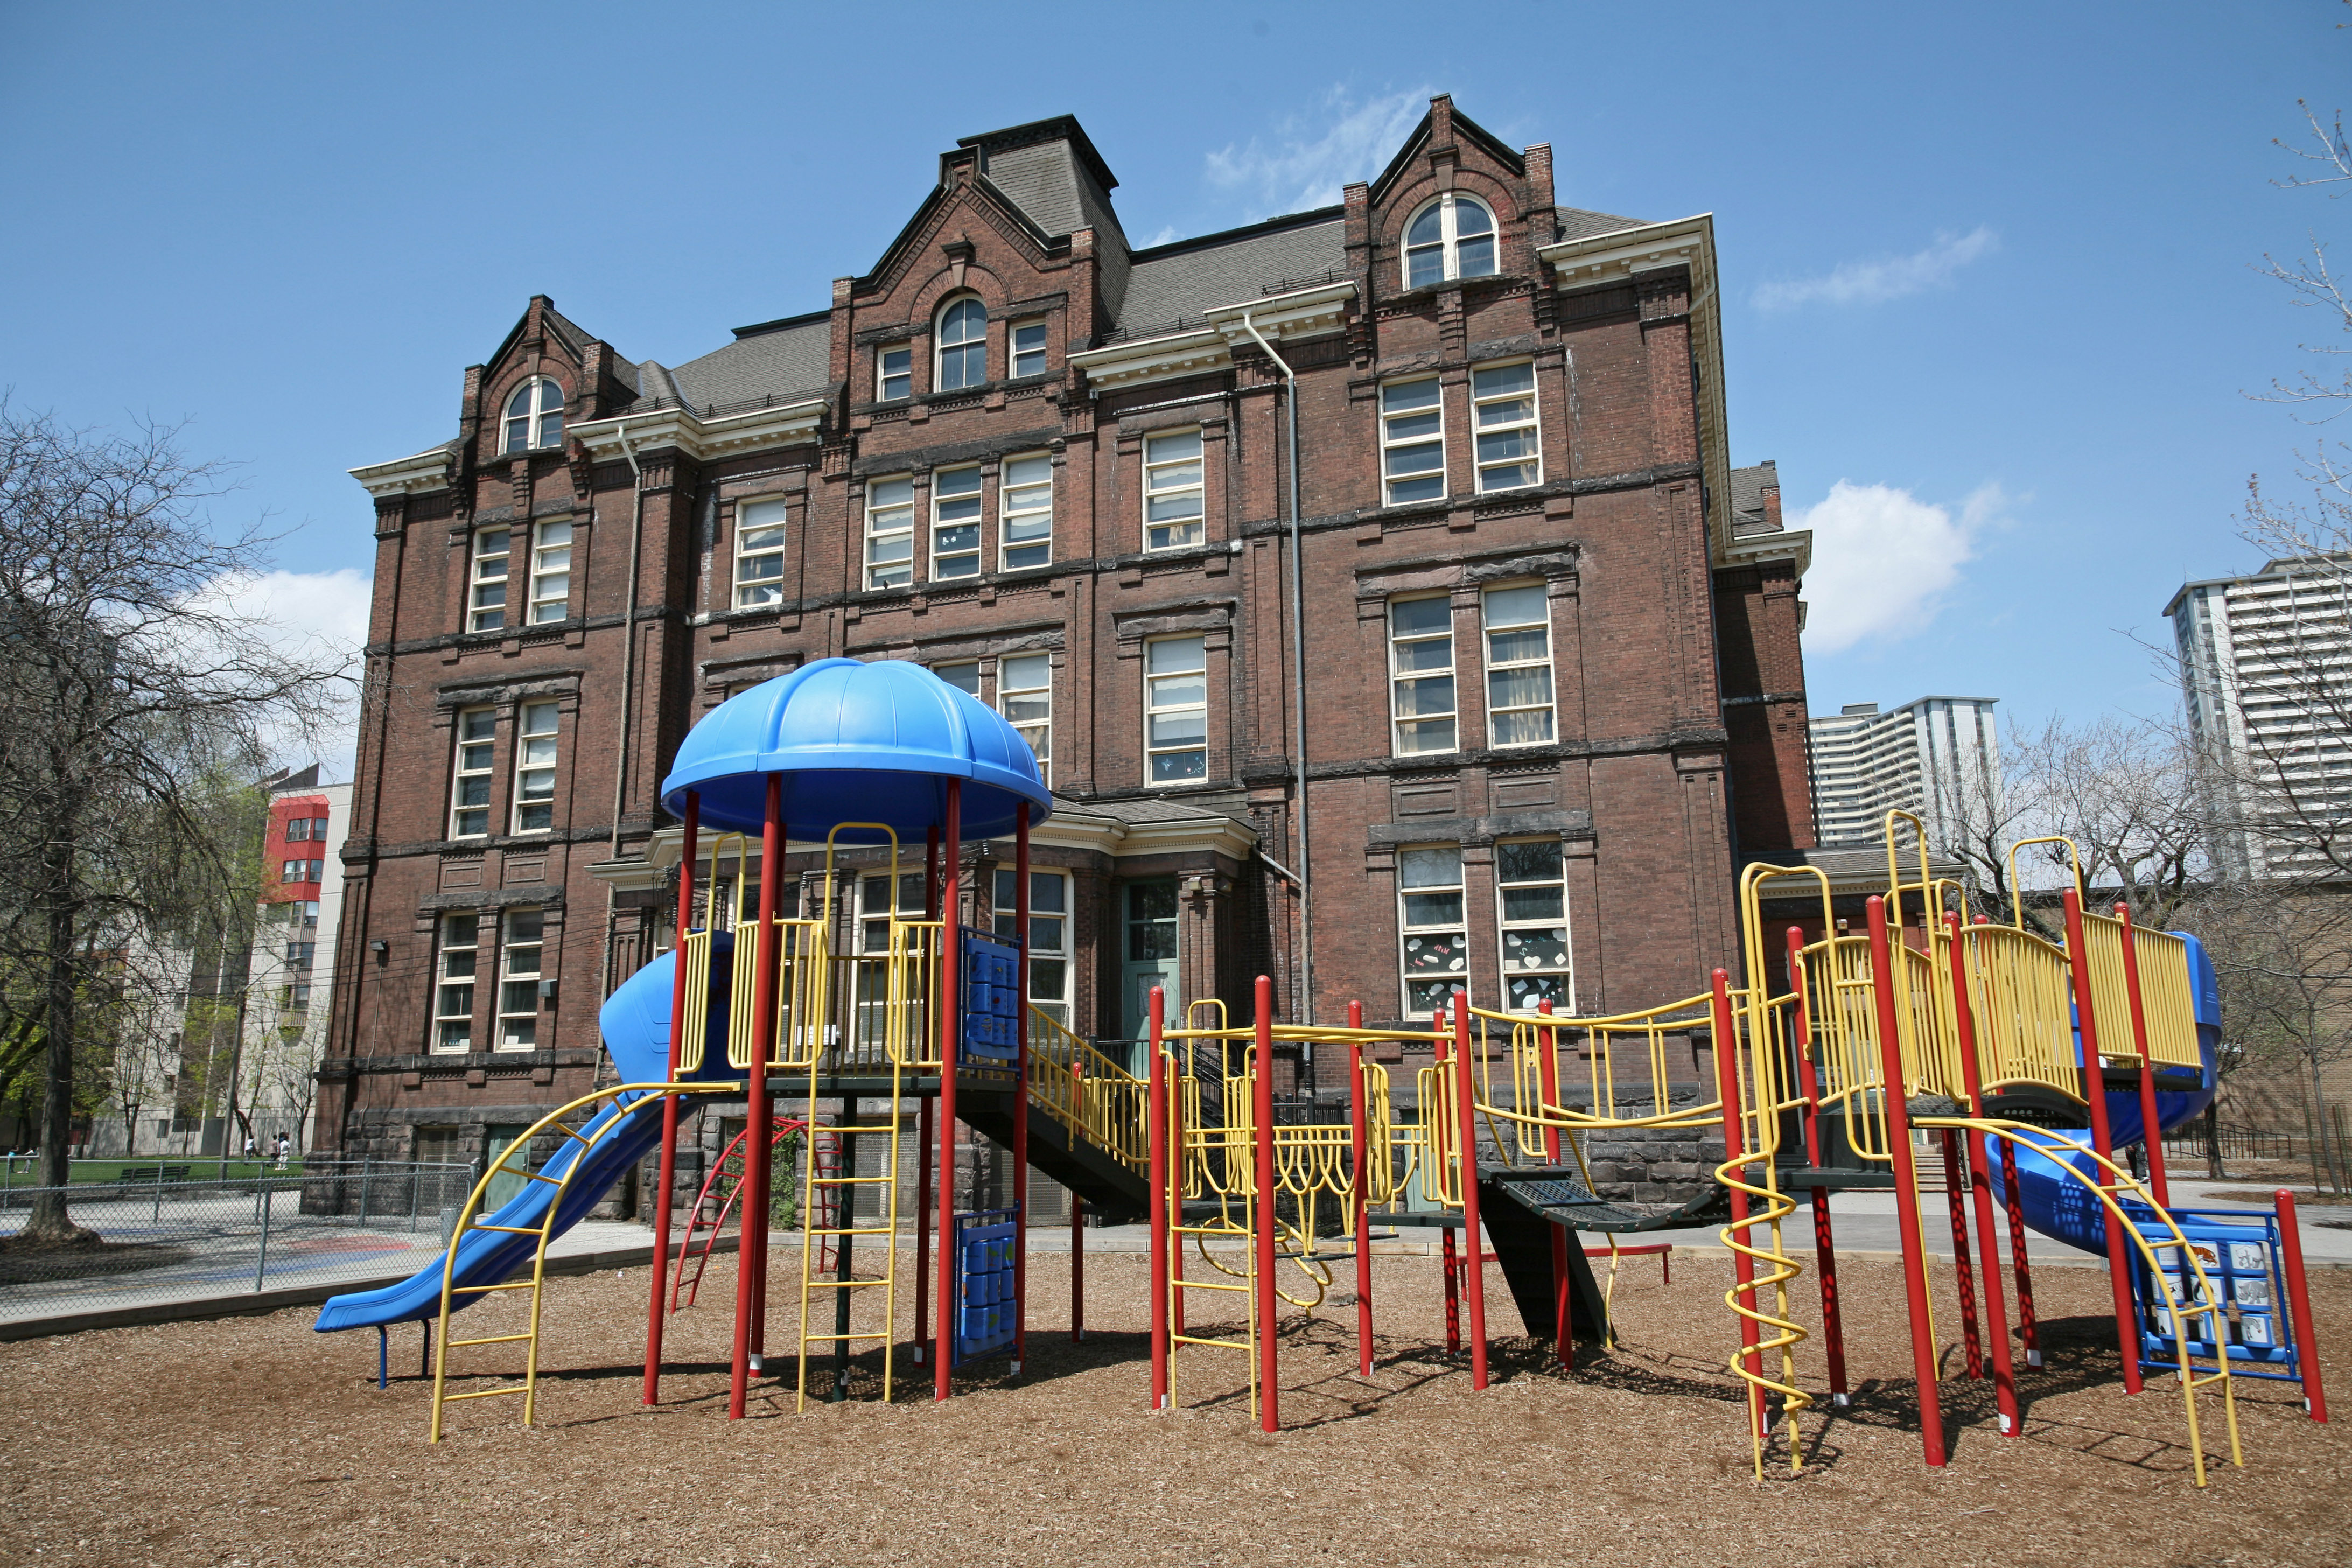 Opening schoolyards to the public after hours boosts park access, says study